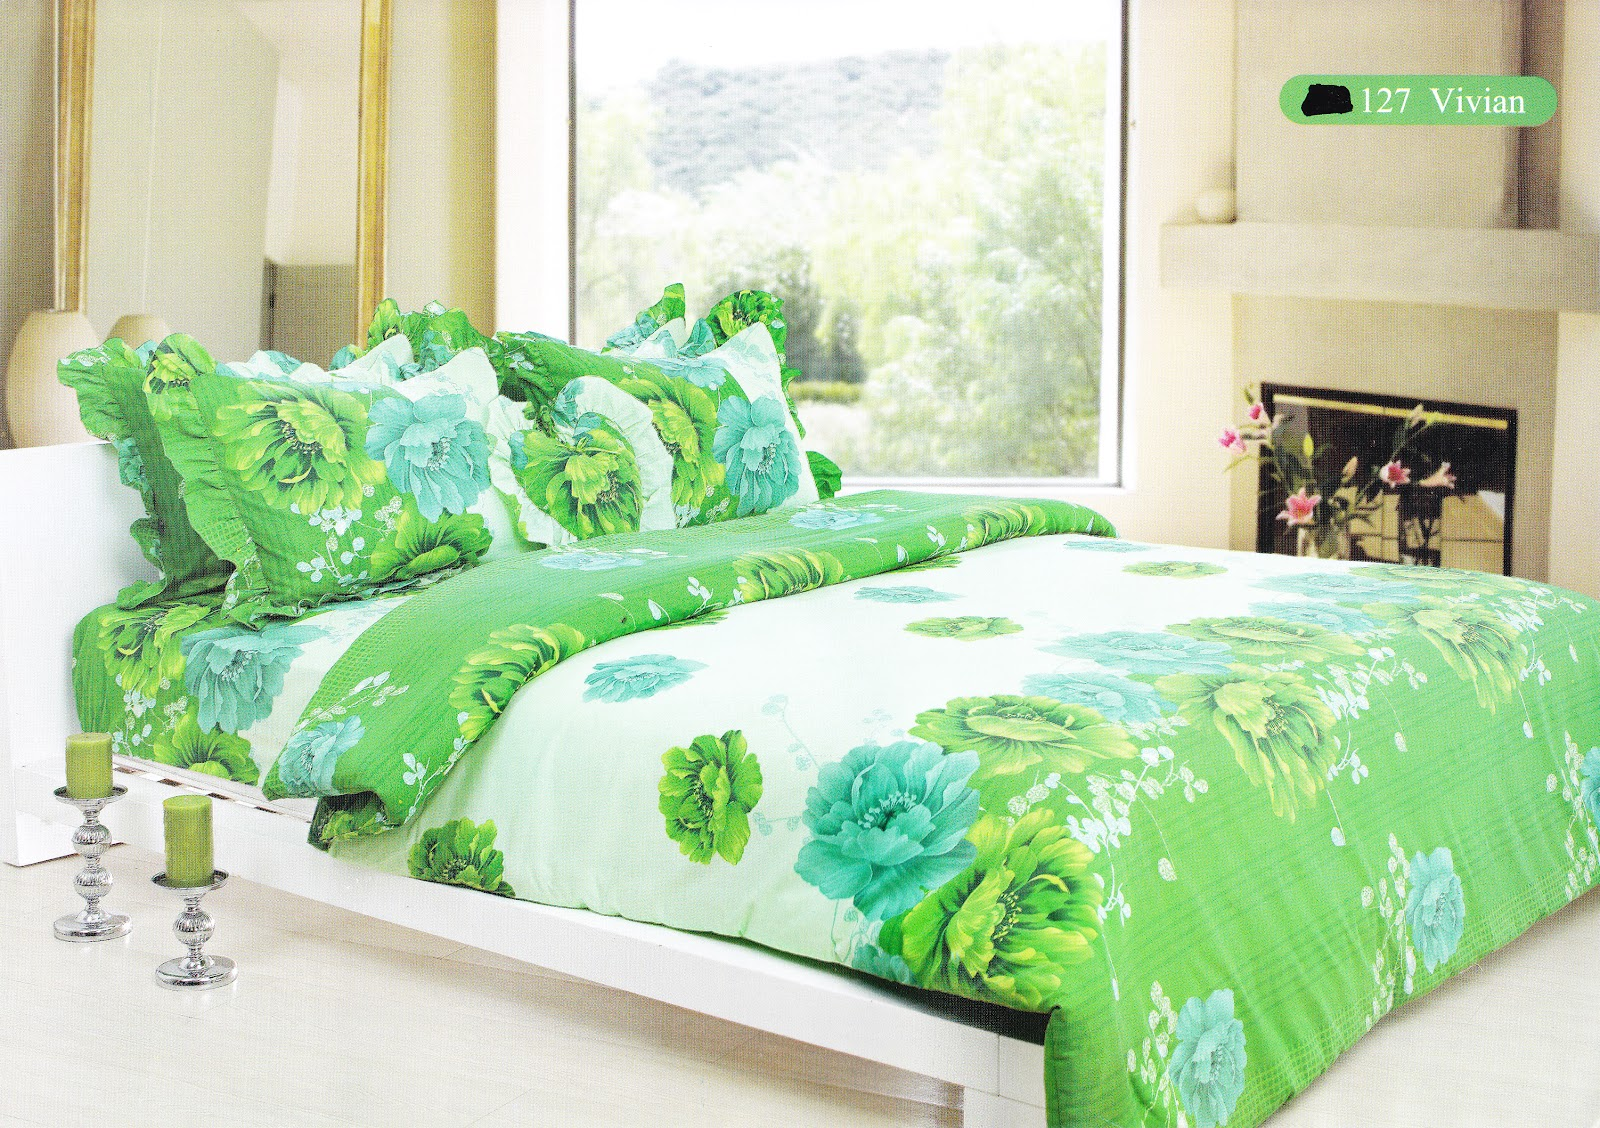 Grosir Sprei Murah Tanah Abang Bed Cover My Love Selimut  Tattoo ...